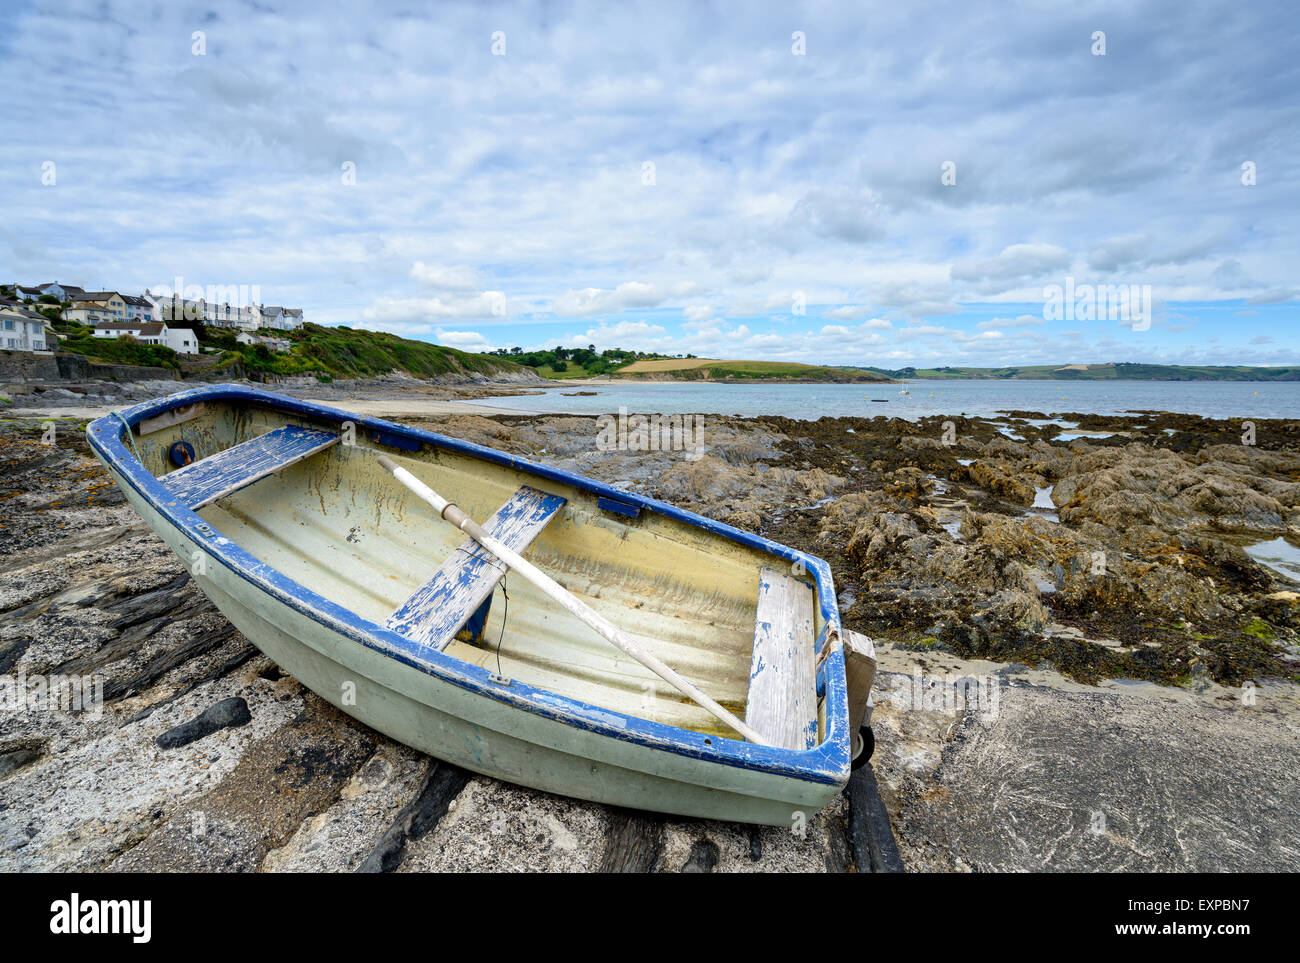 A dinghy on the beach at Portscatho a small picturesque fishing village near St Mawes on the Cornish coast Stock Photo